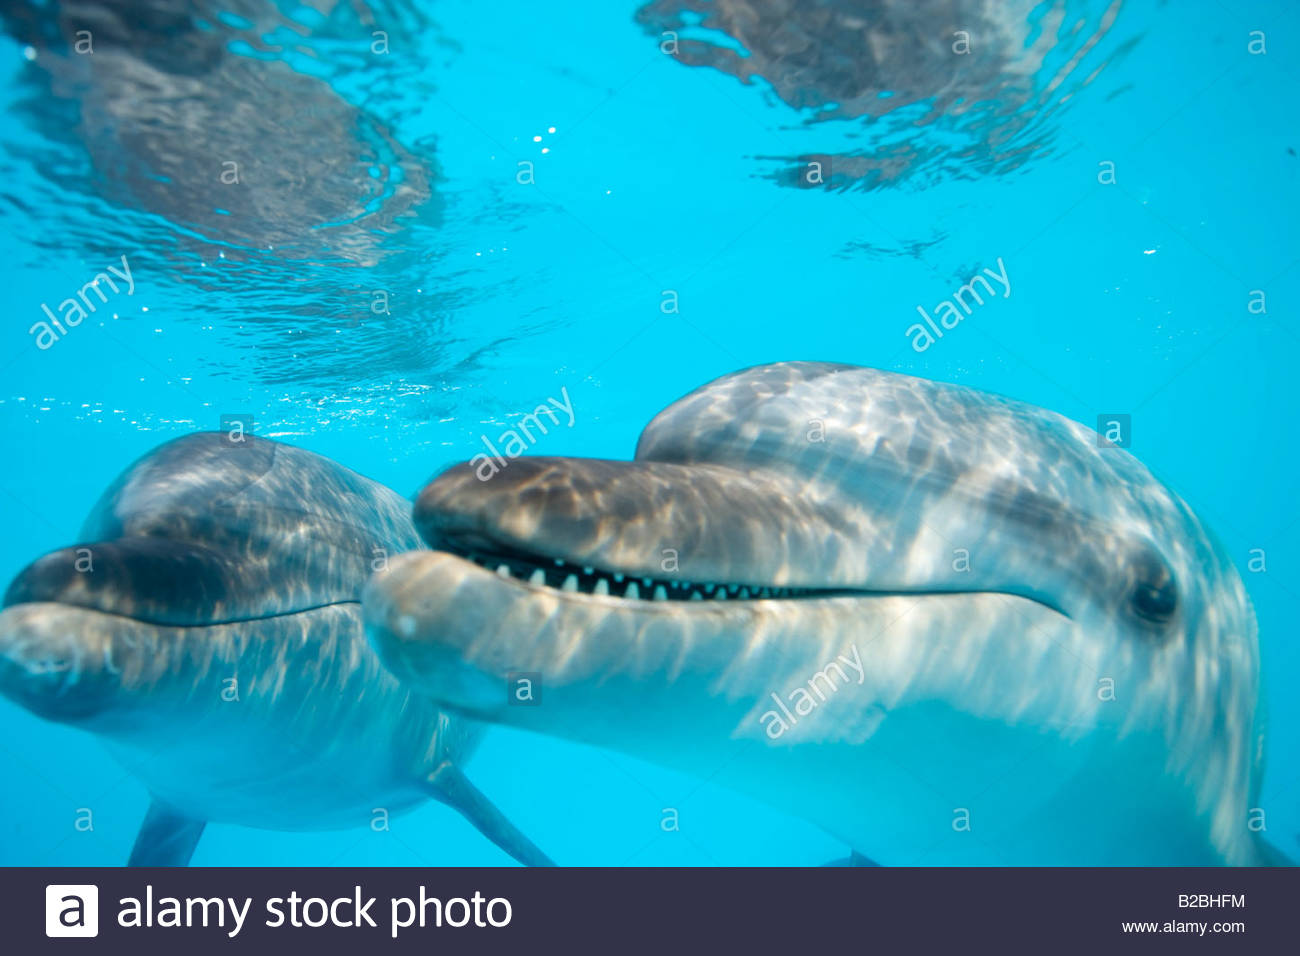 Close up of dolphins underwater - Stock Image